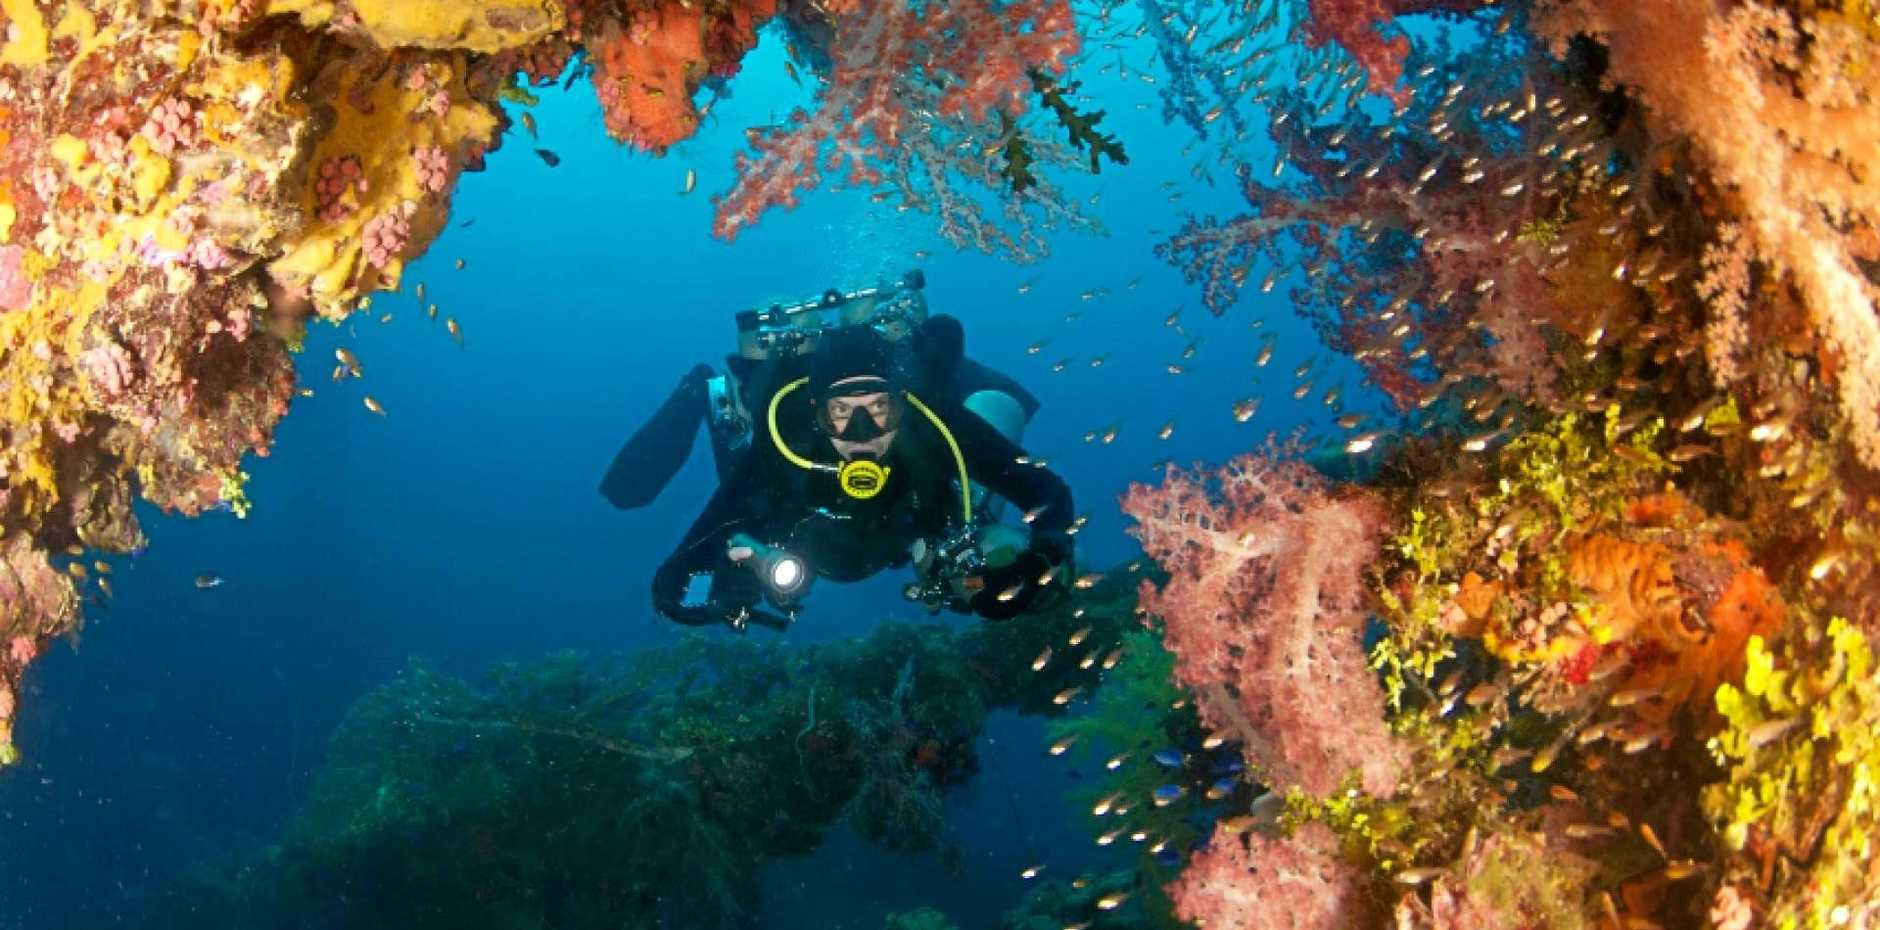 WHAT LIES BENEATH: Diving to deeper depths has its own set of wonders.